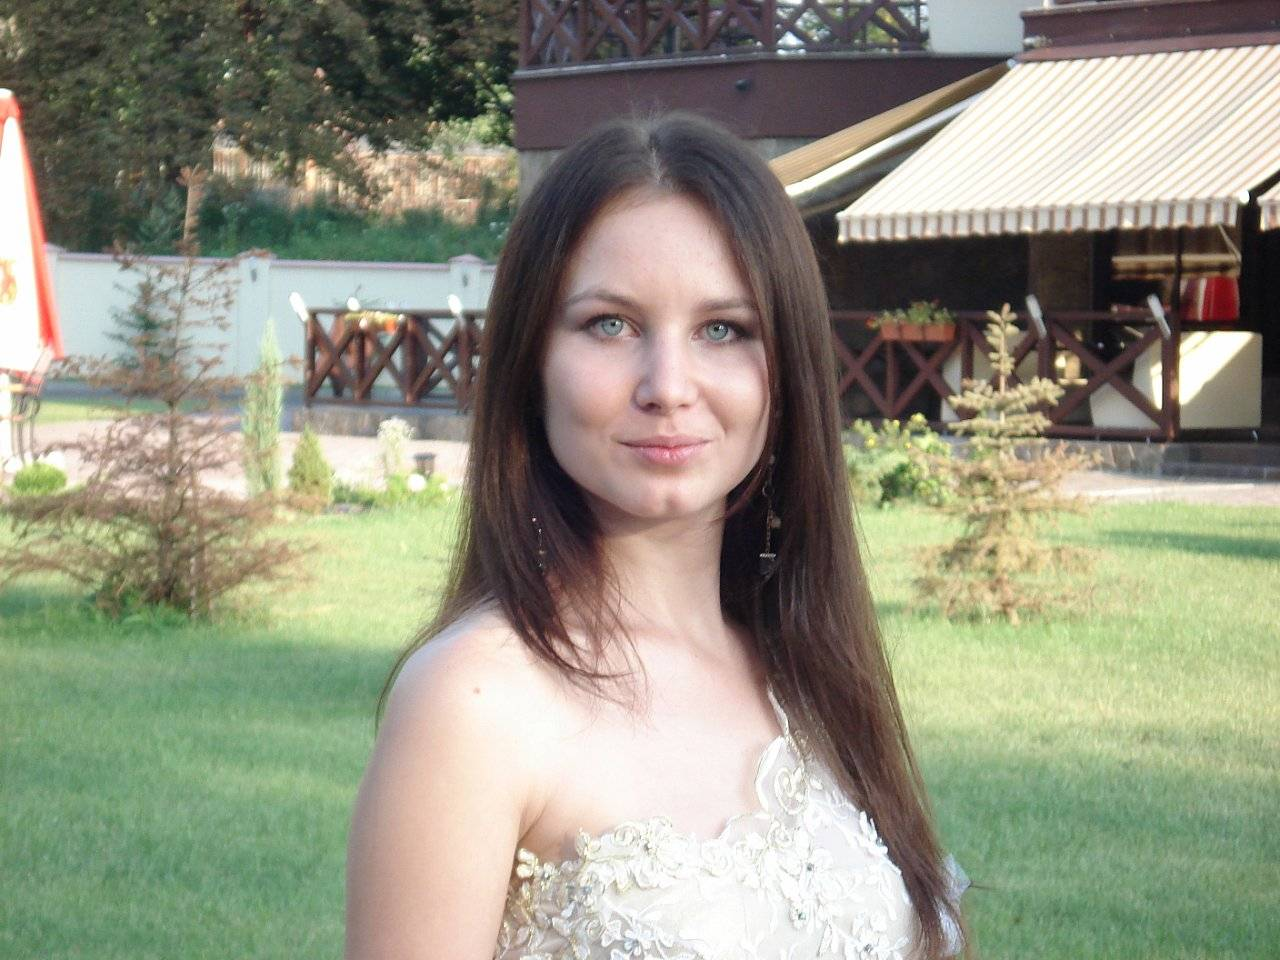 Katholische single-dating-sites